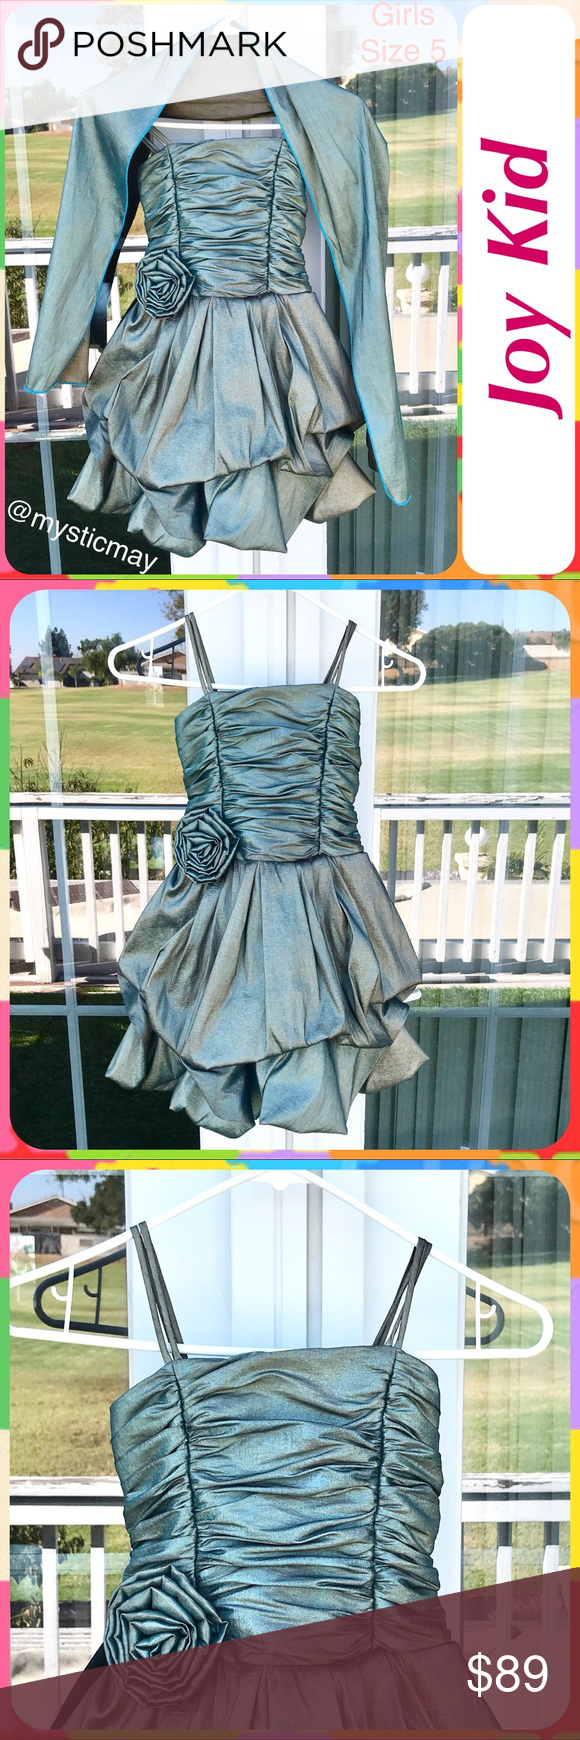 JOY KID Teal Shimmer Bubble Hem Party Dress Size 6 | Teal party ...